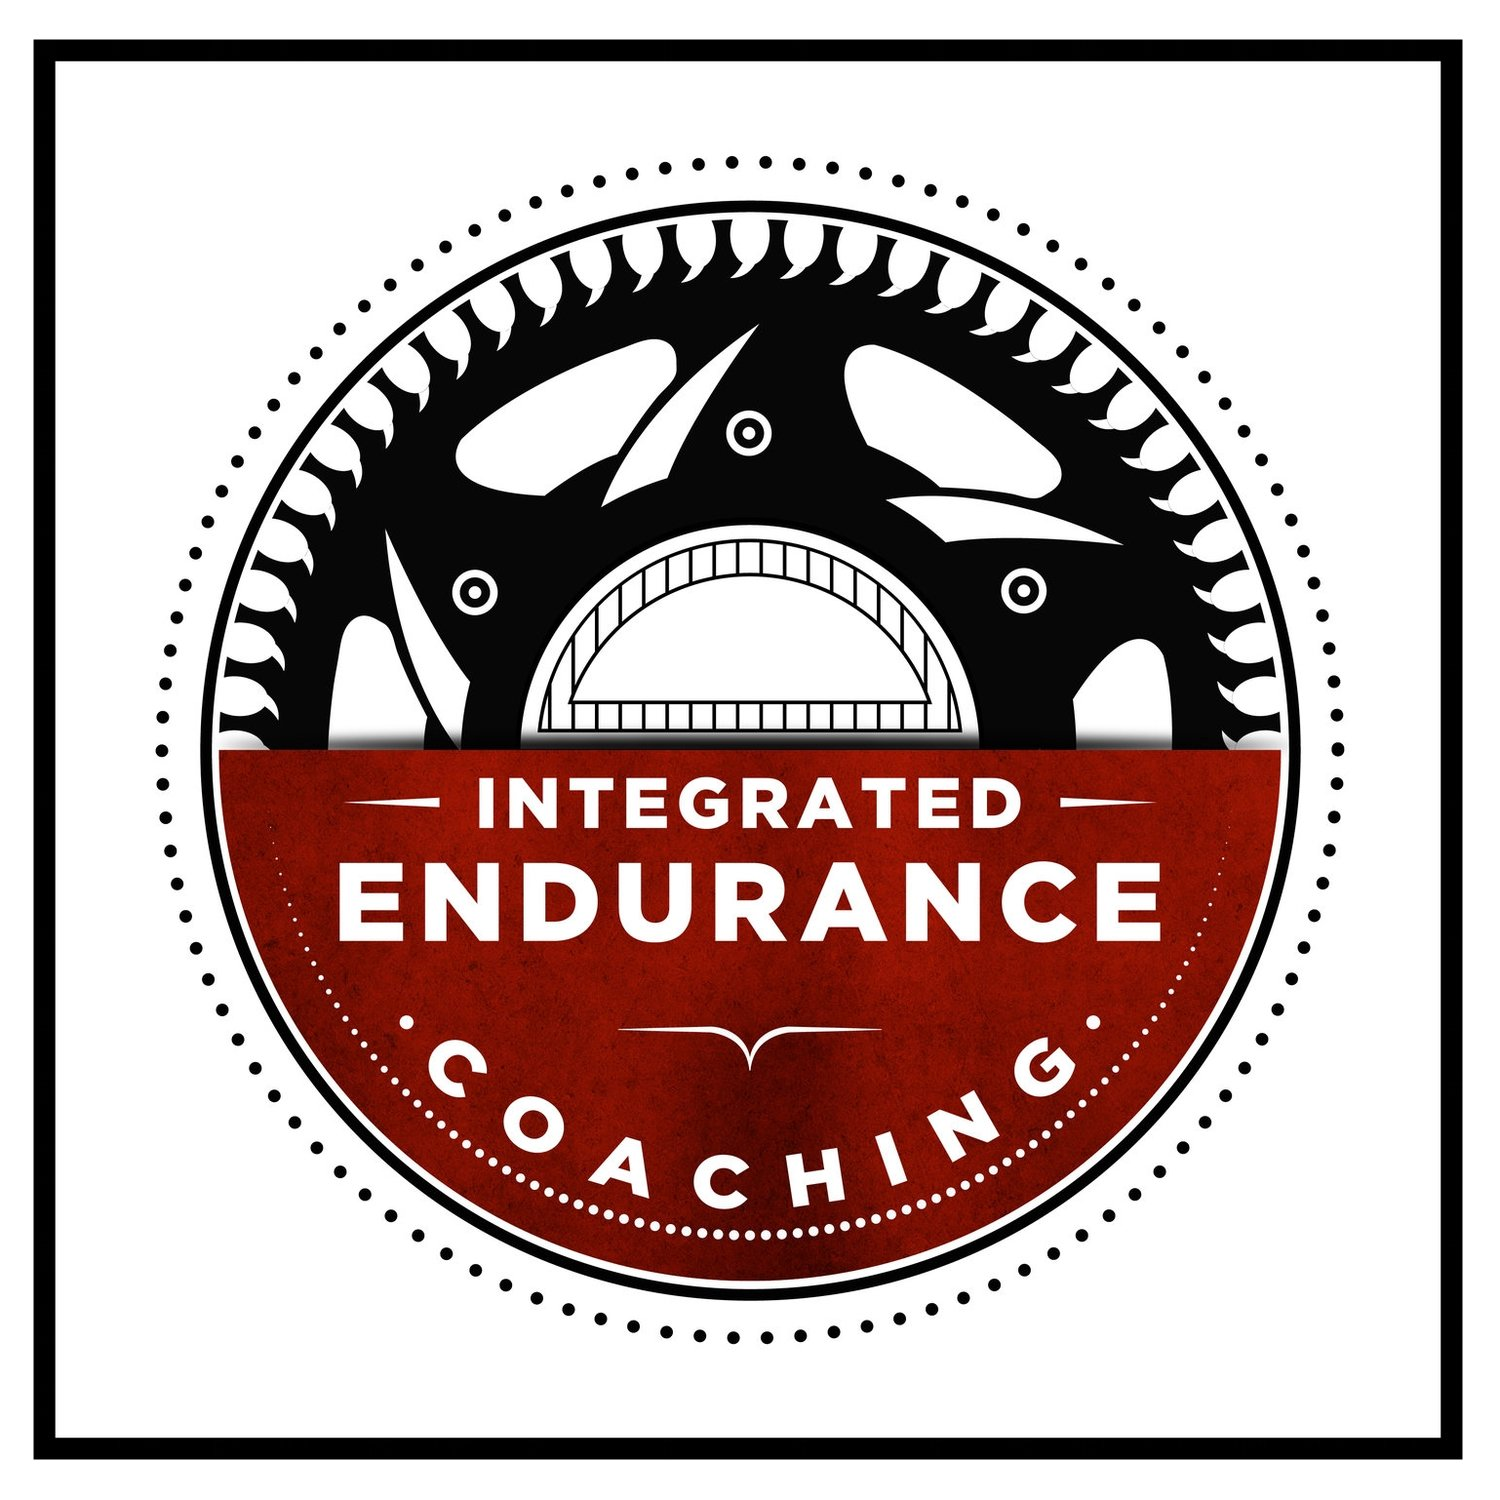 Integrated Endurance